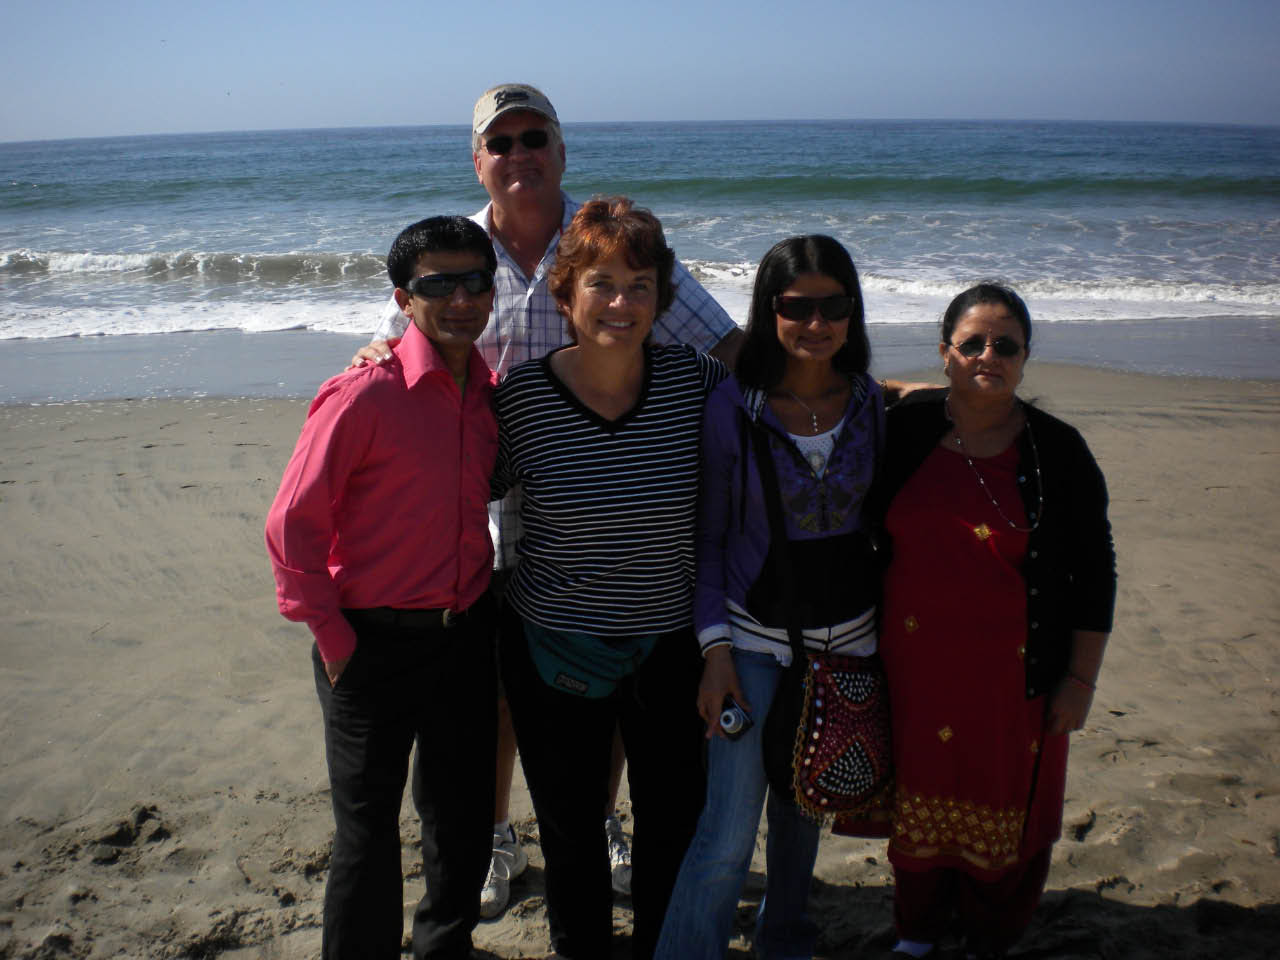 Beach Day with some of our new friends from Nepal